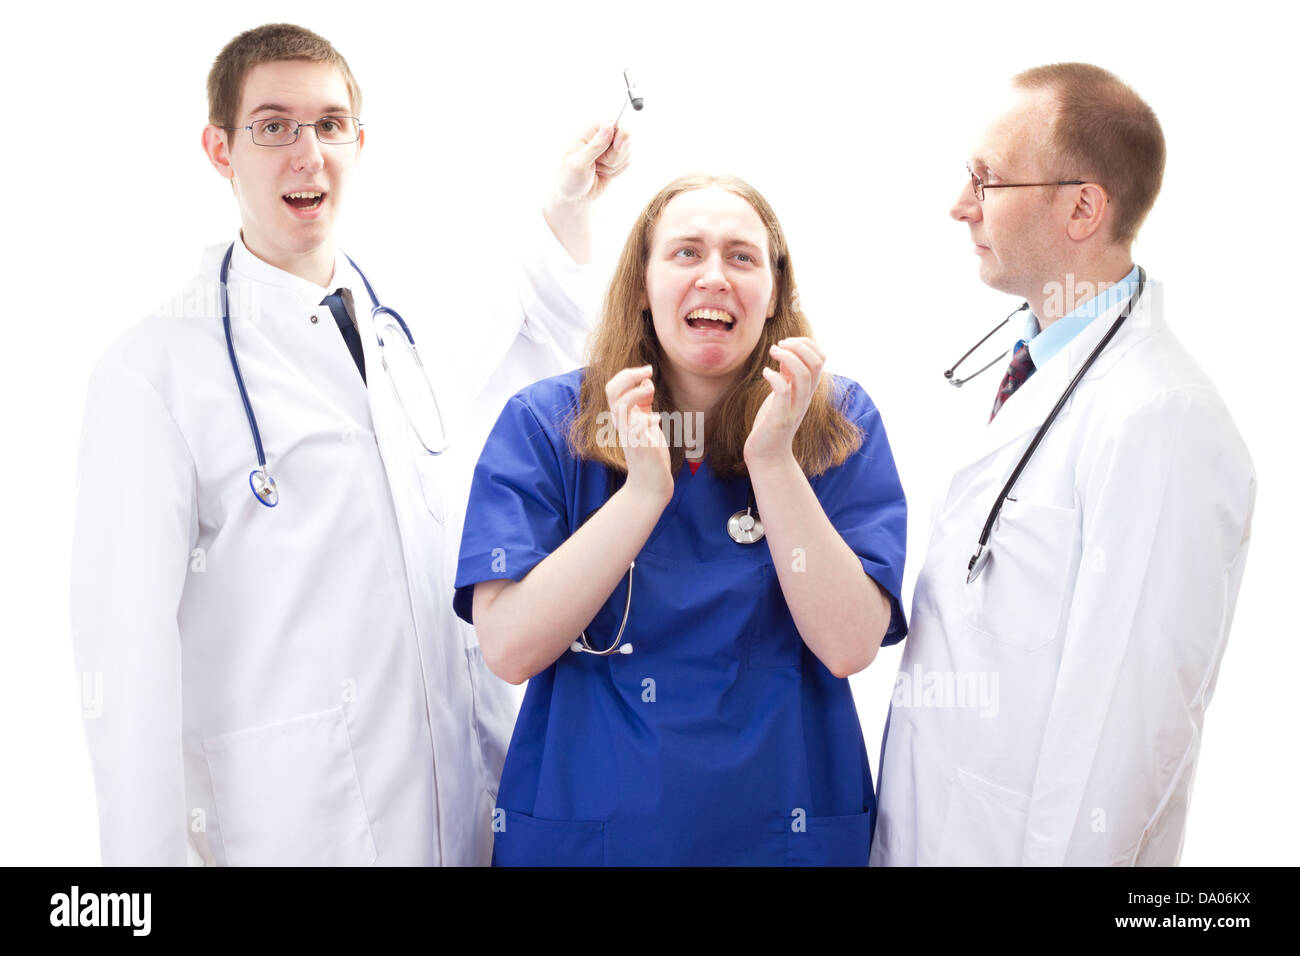 Young female nurse suffer bullying at work - Stock Image